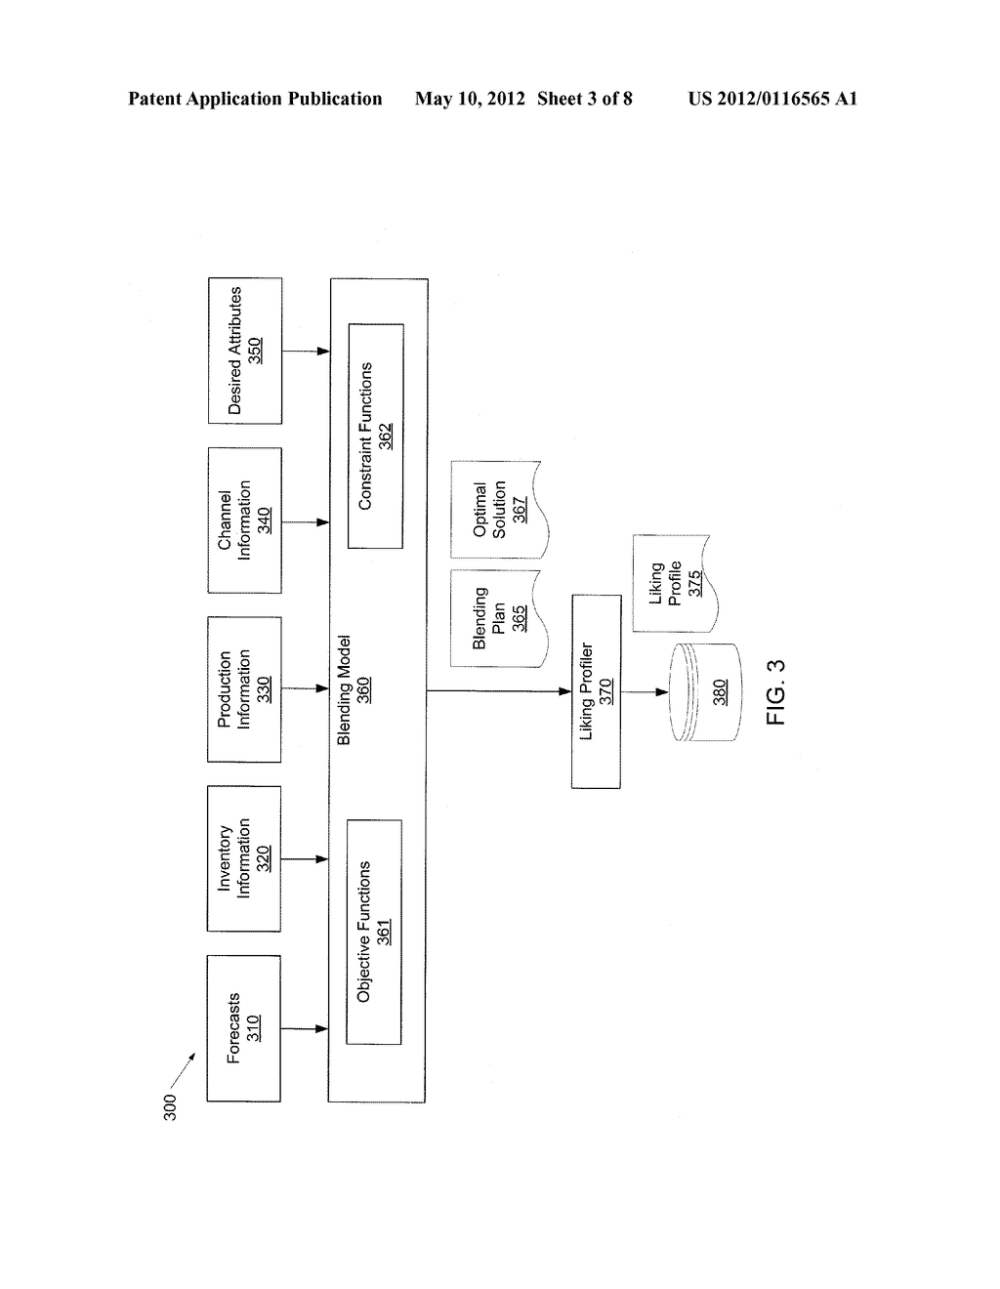 medium resolution of total quality management system for optimizing drink process flow diagram schematic and image 04